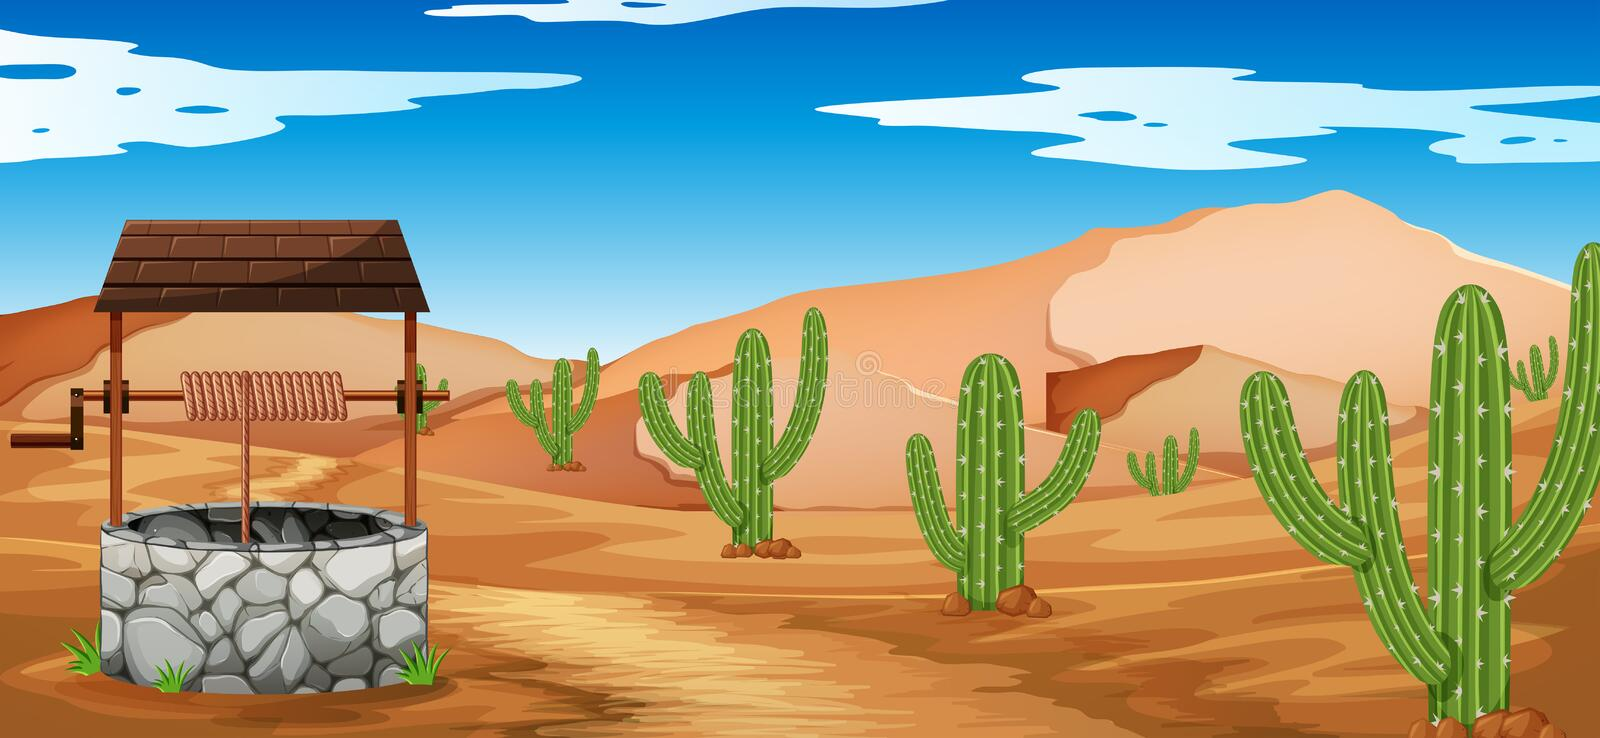 Desert scene with cactus and well vector illustration